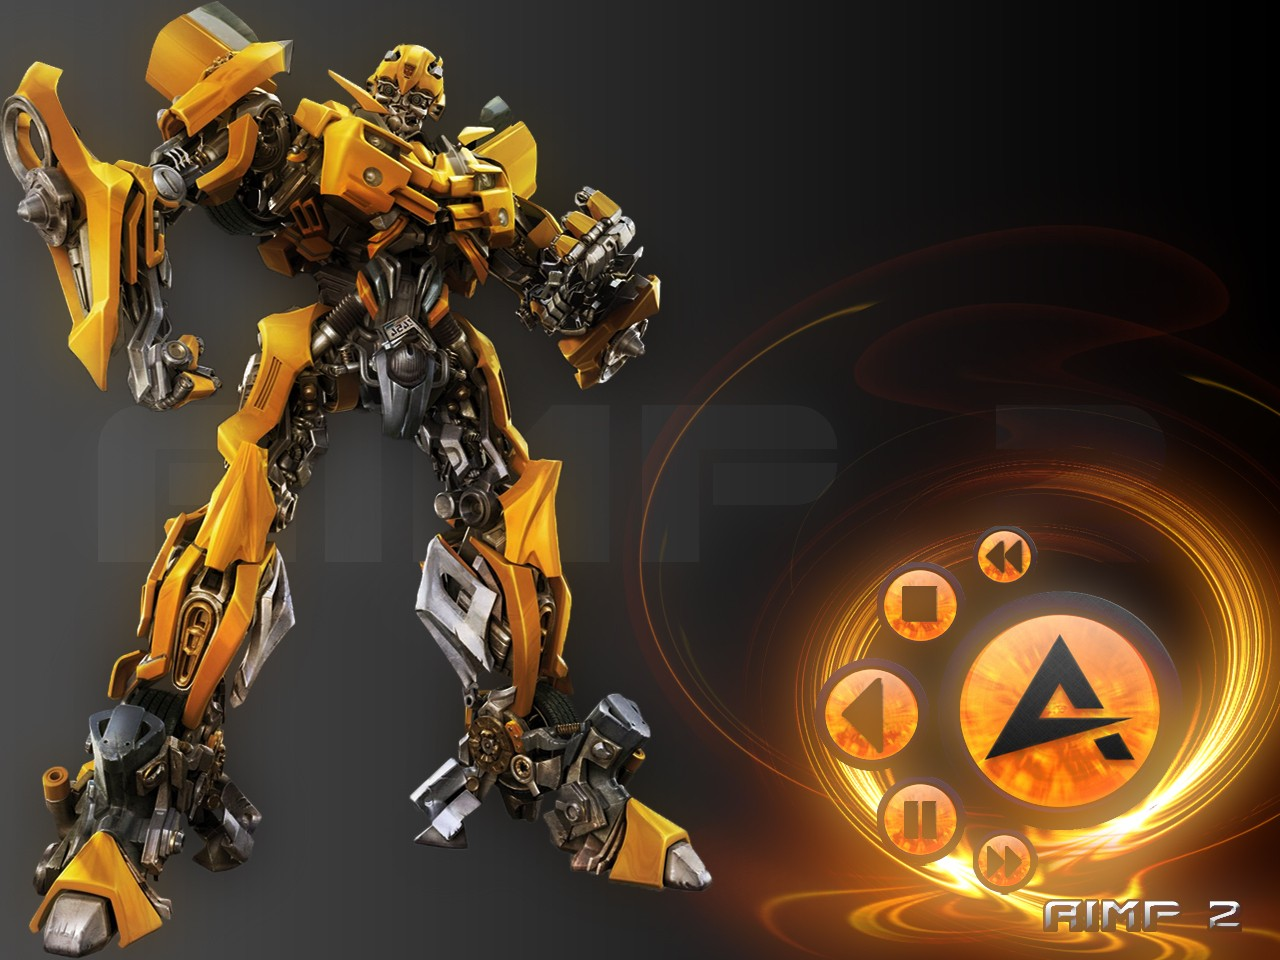 Transformers Or Aimp 2 Mp3 Player